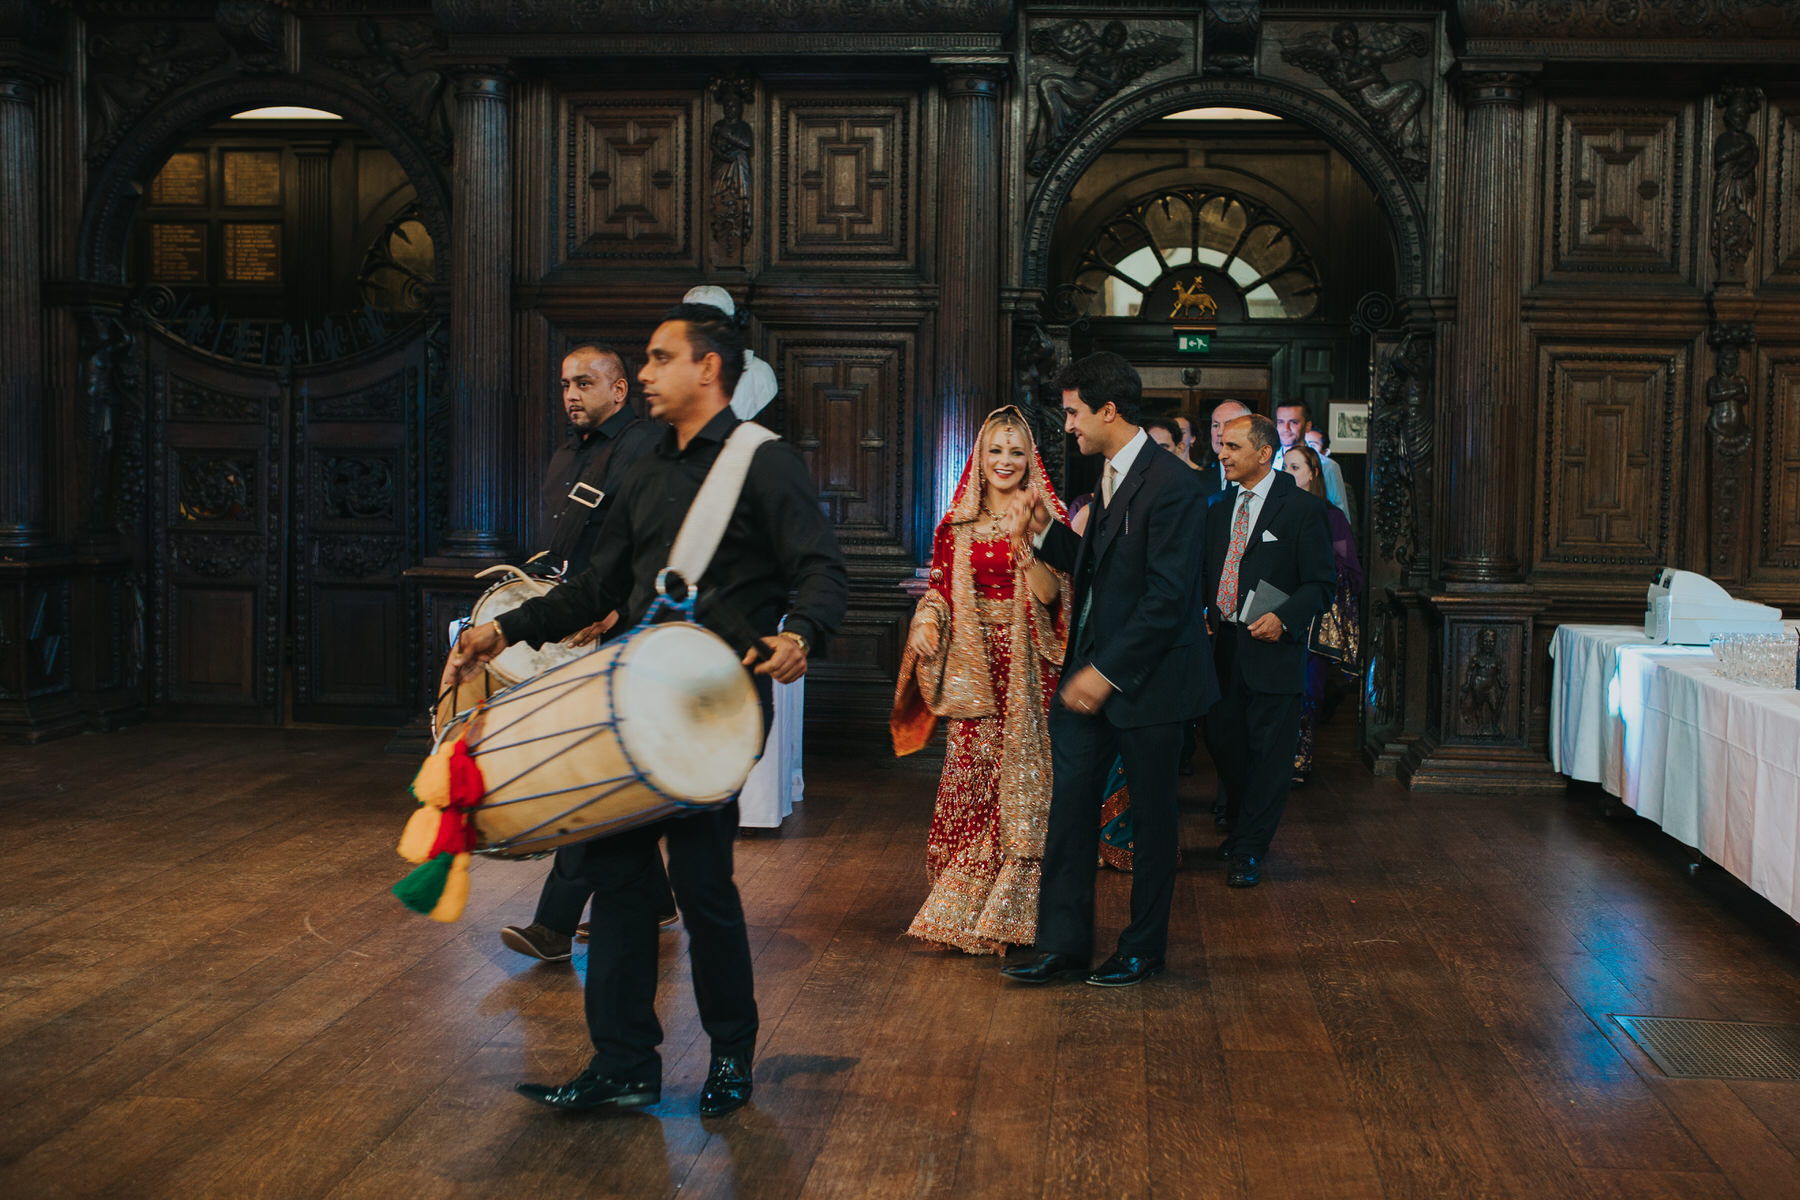 171-Anglo-Asian-London-Wedding-Dhol-Squad-lead-couple-family.jpg